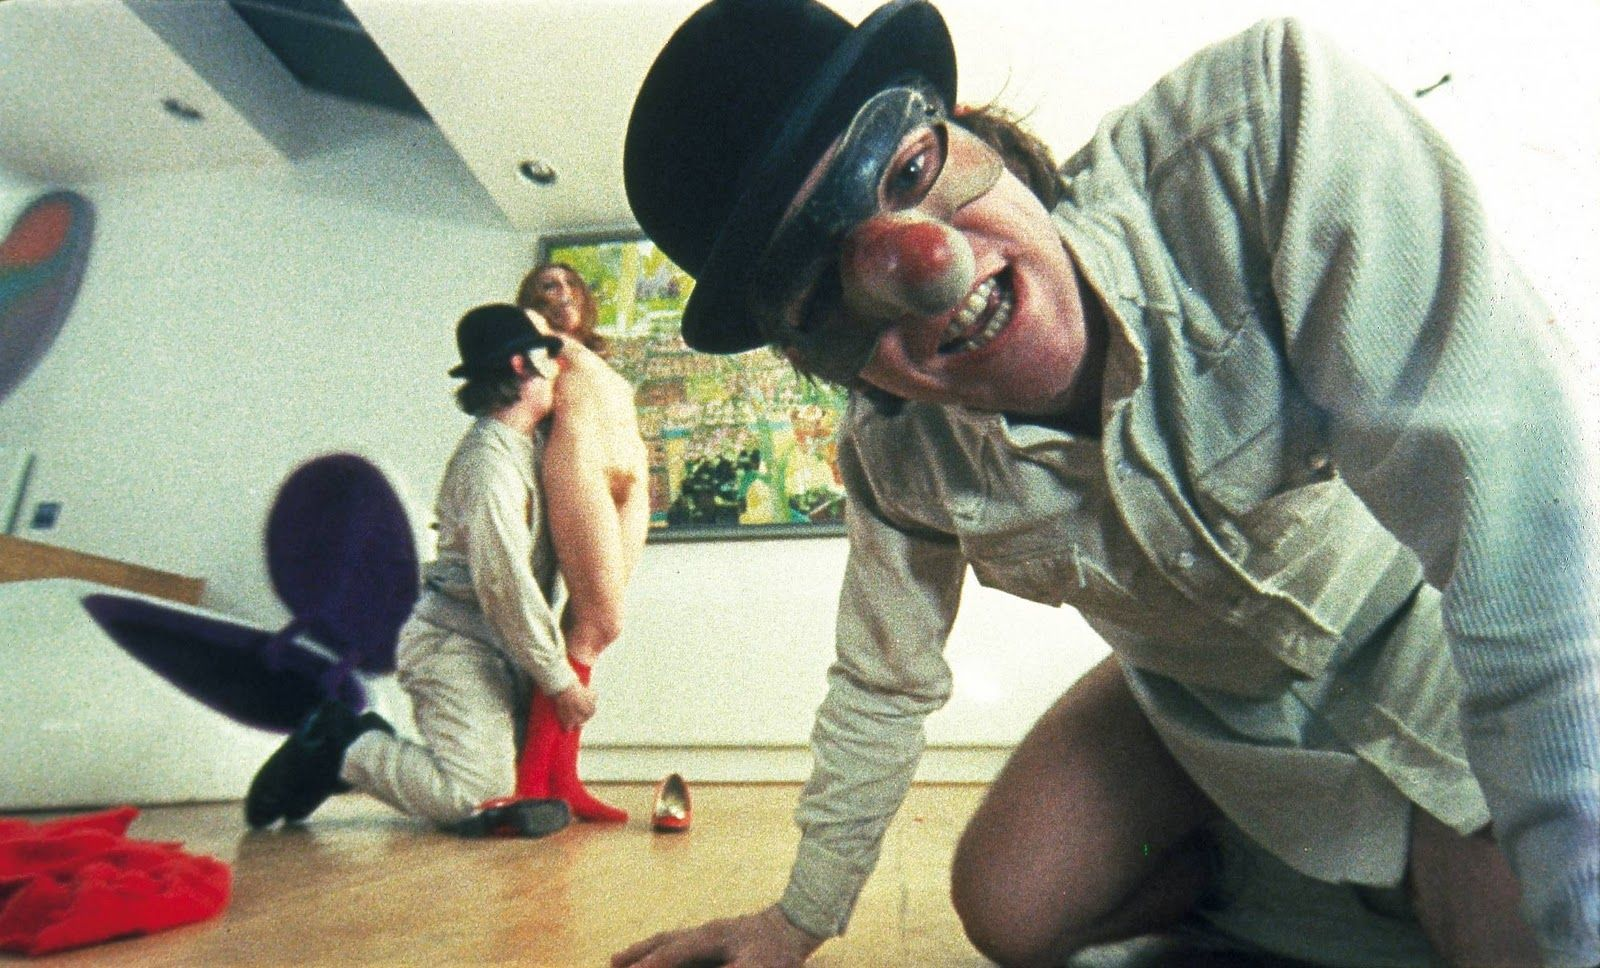 clockwork orange la naranja mecanica inspired cinema  a clockwork orange publicity still of malcolm mcdowell warren clarke adrienne corri the image measures 1200 725 pixels and was added on 1